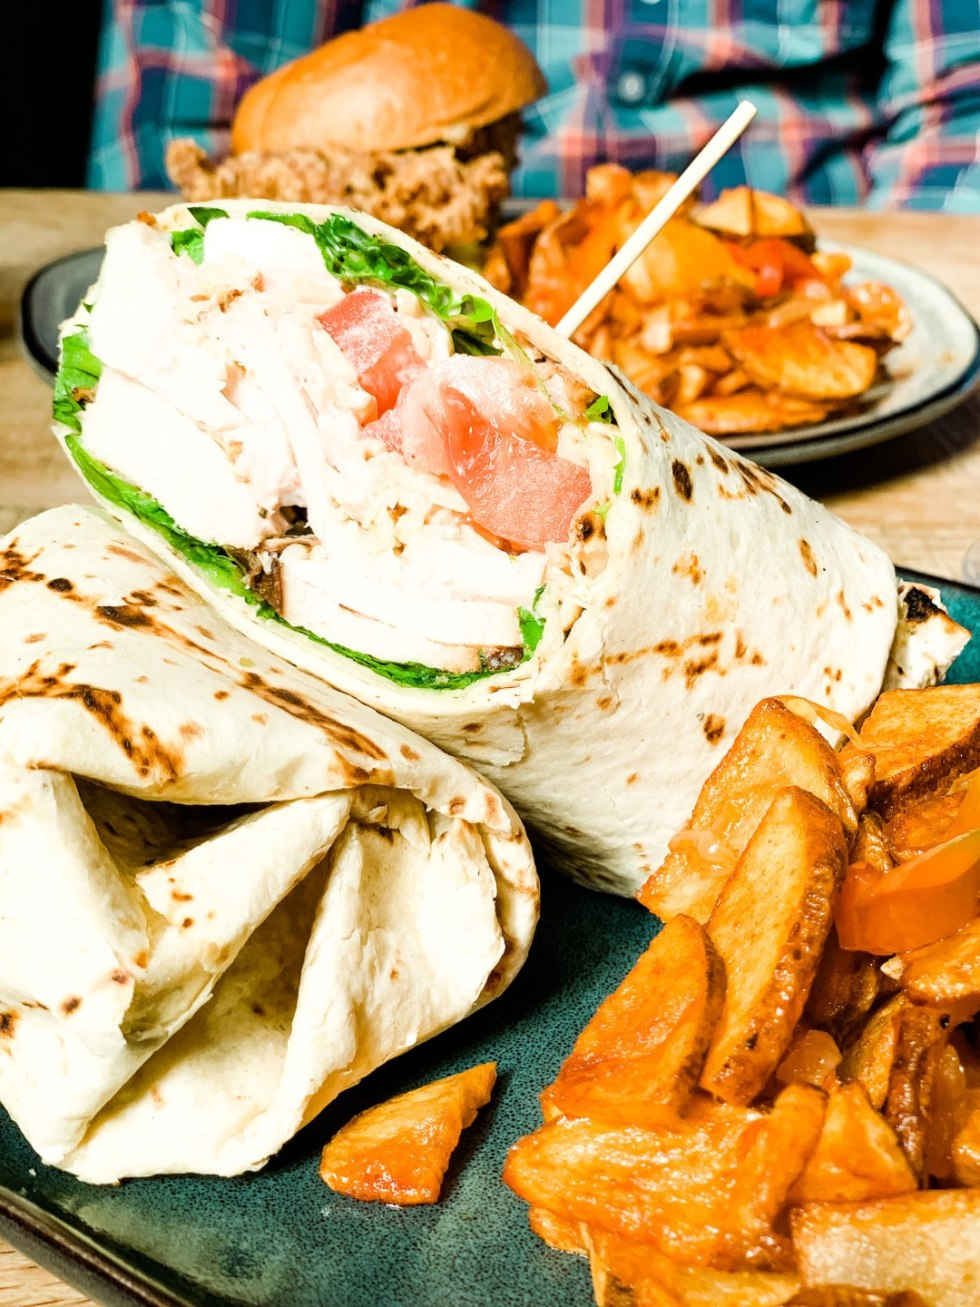 Where to Get Brunch in Raleigh: the 7 Best Spots - I'm Fixin' To - @mbg0112 | Brunch in Raleigh by popular Raleigh blog, I'm Fixin To: image of Whiskey Kitchen chicken wrap.